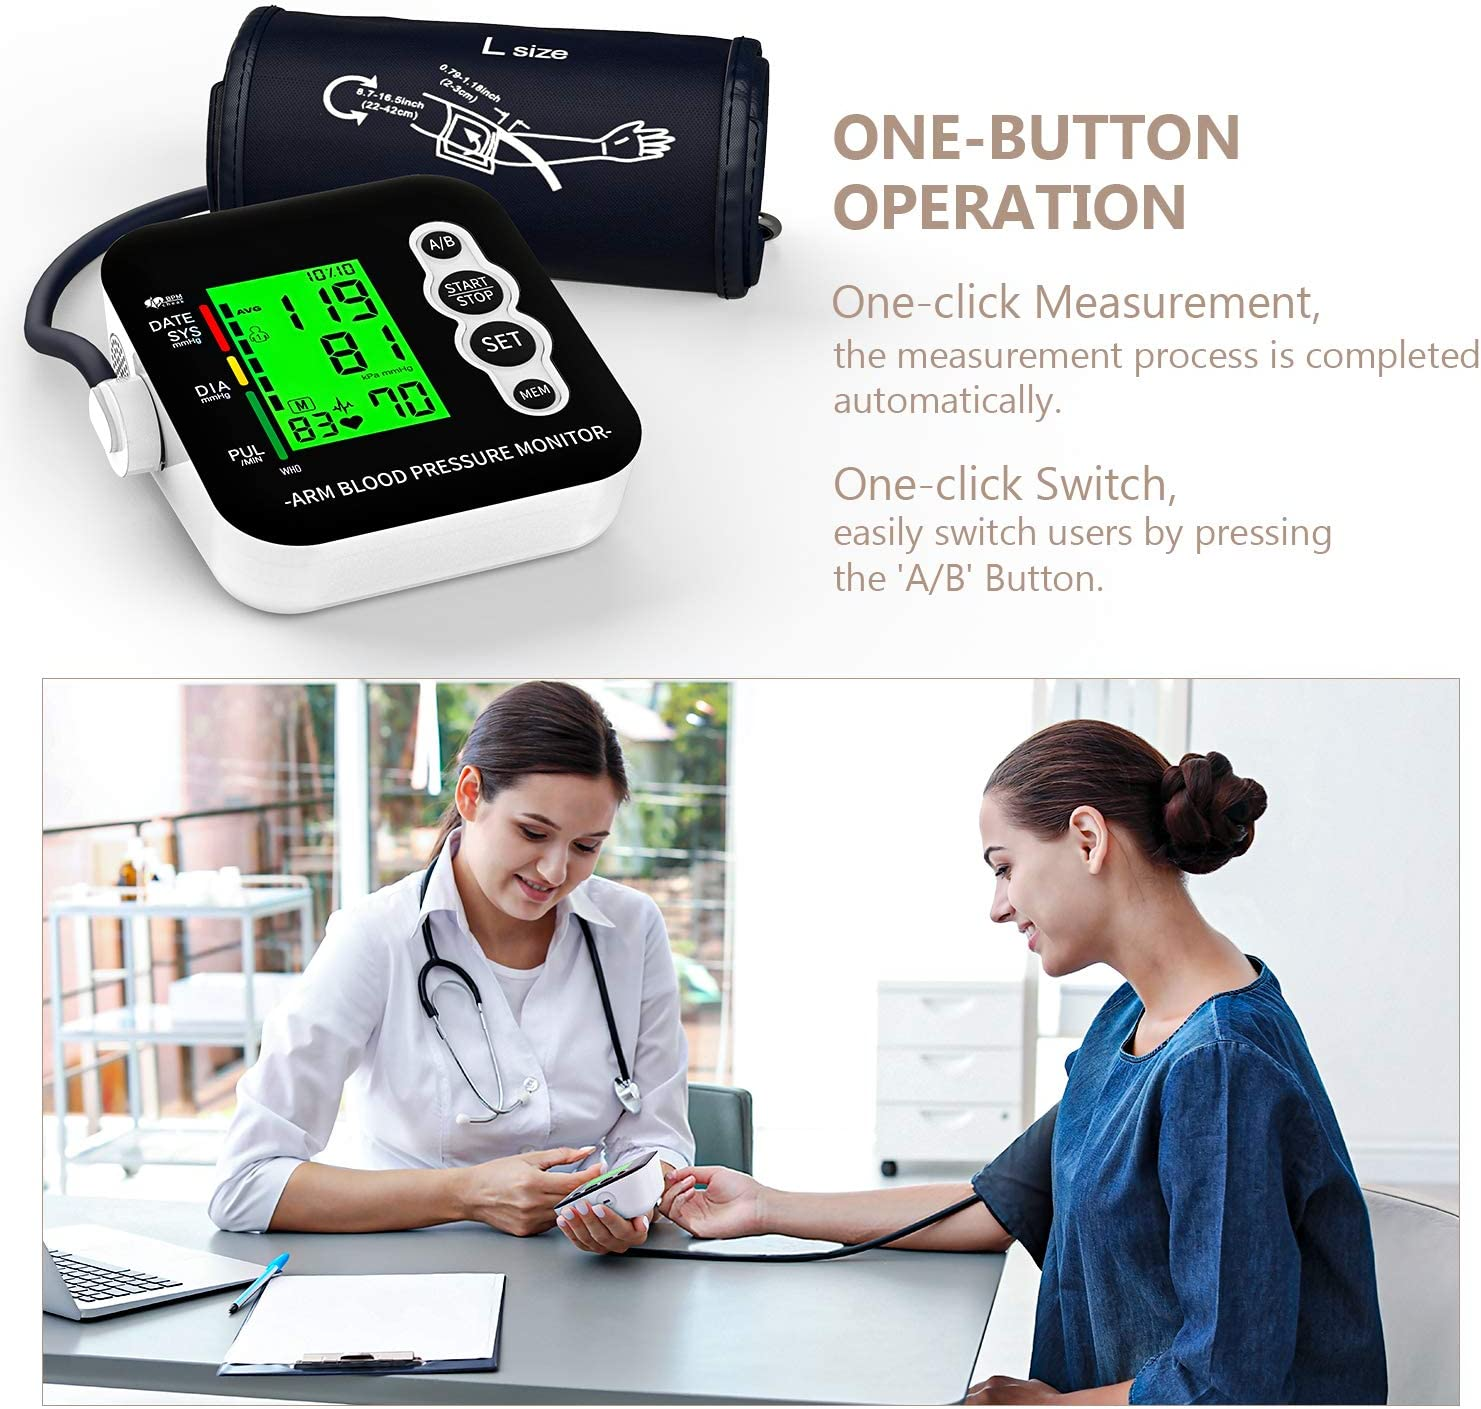 2 x 99 Memories Large Three-Color Backlight Display Blood Pressure Monitor OUDEKAY Digital Automatic Upper Arm Blood Pressure Monitor and Heart Rate Pulse with Wide-Range Cuff for Home Use